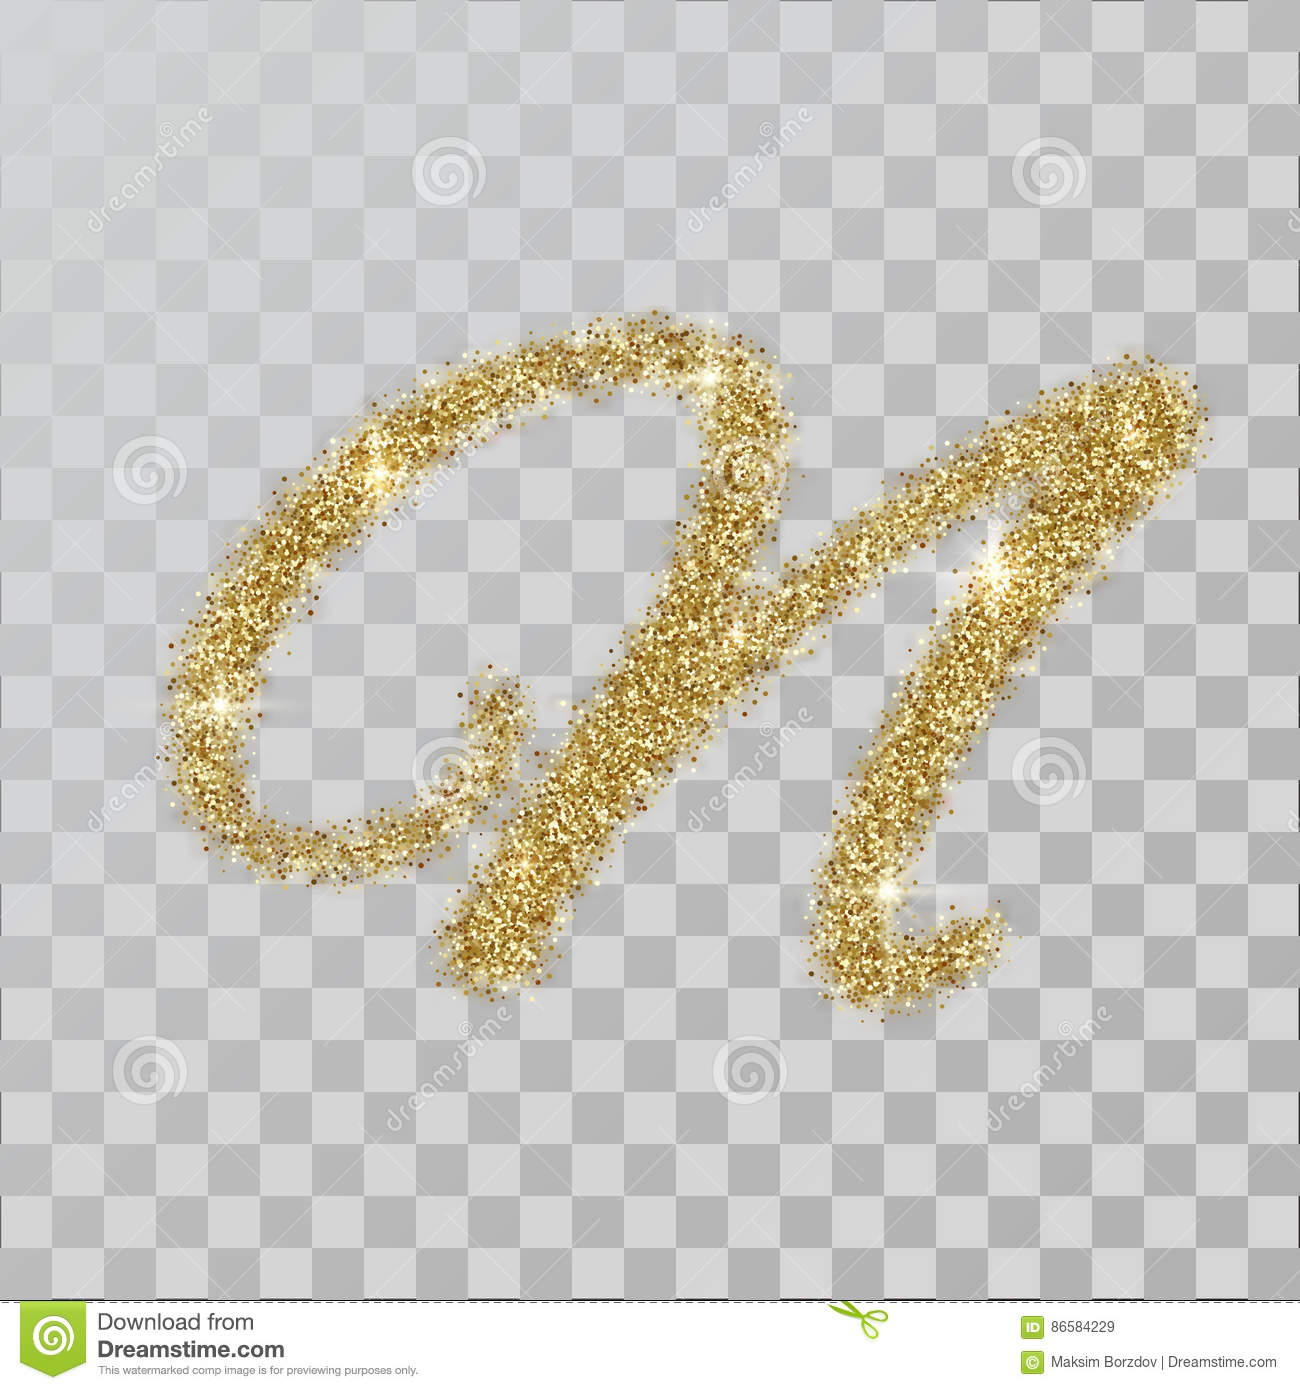 Gold Glitter Powder Letter N In Hand Painted Style Stock Vector